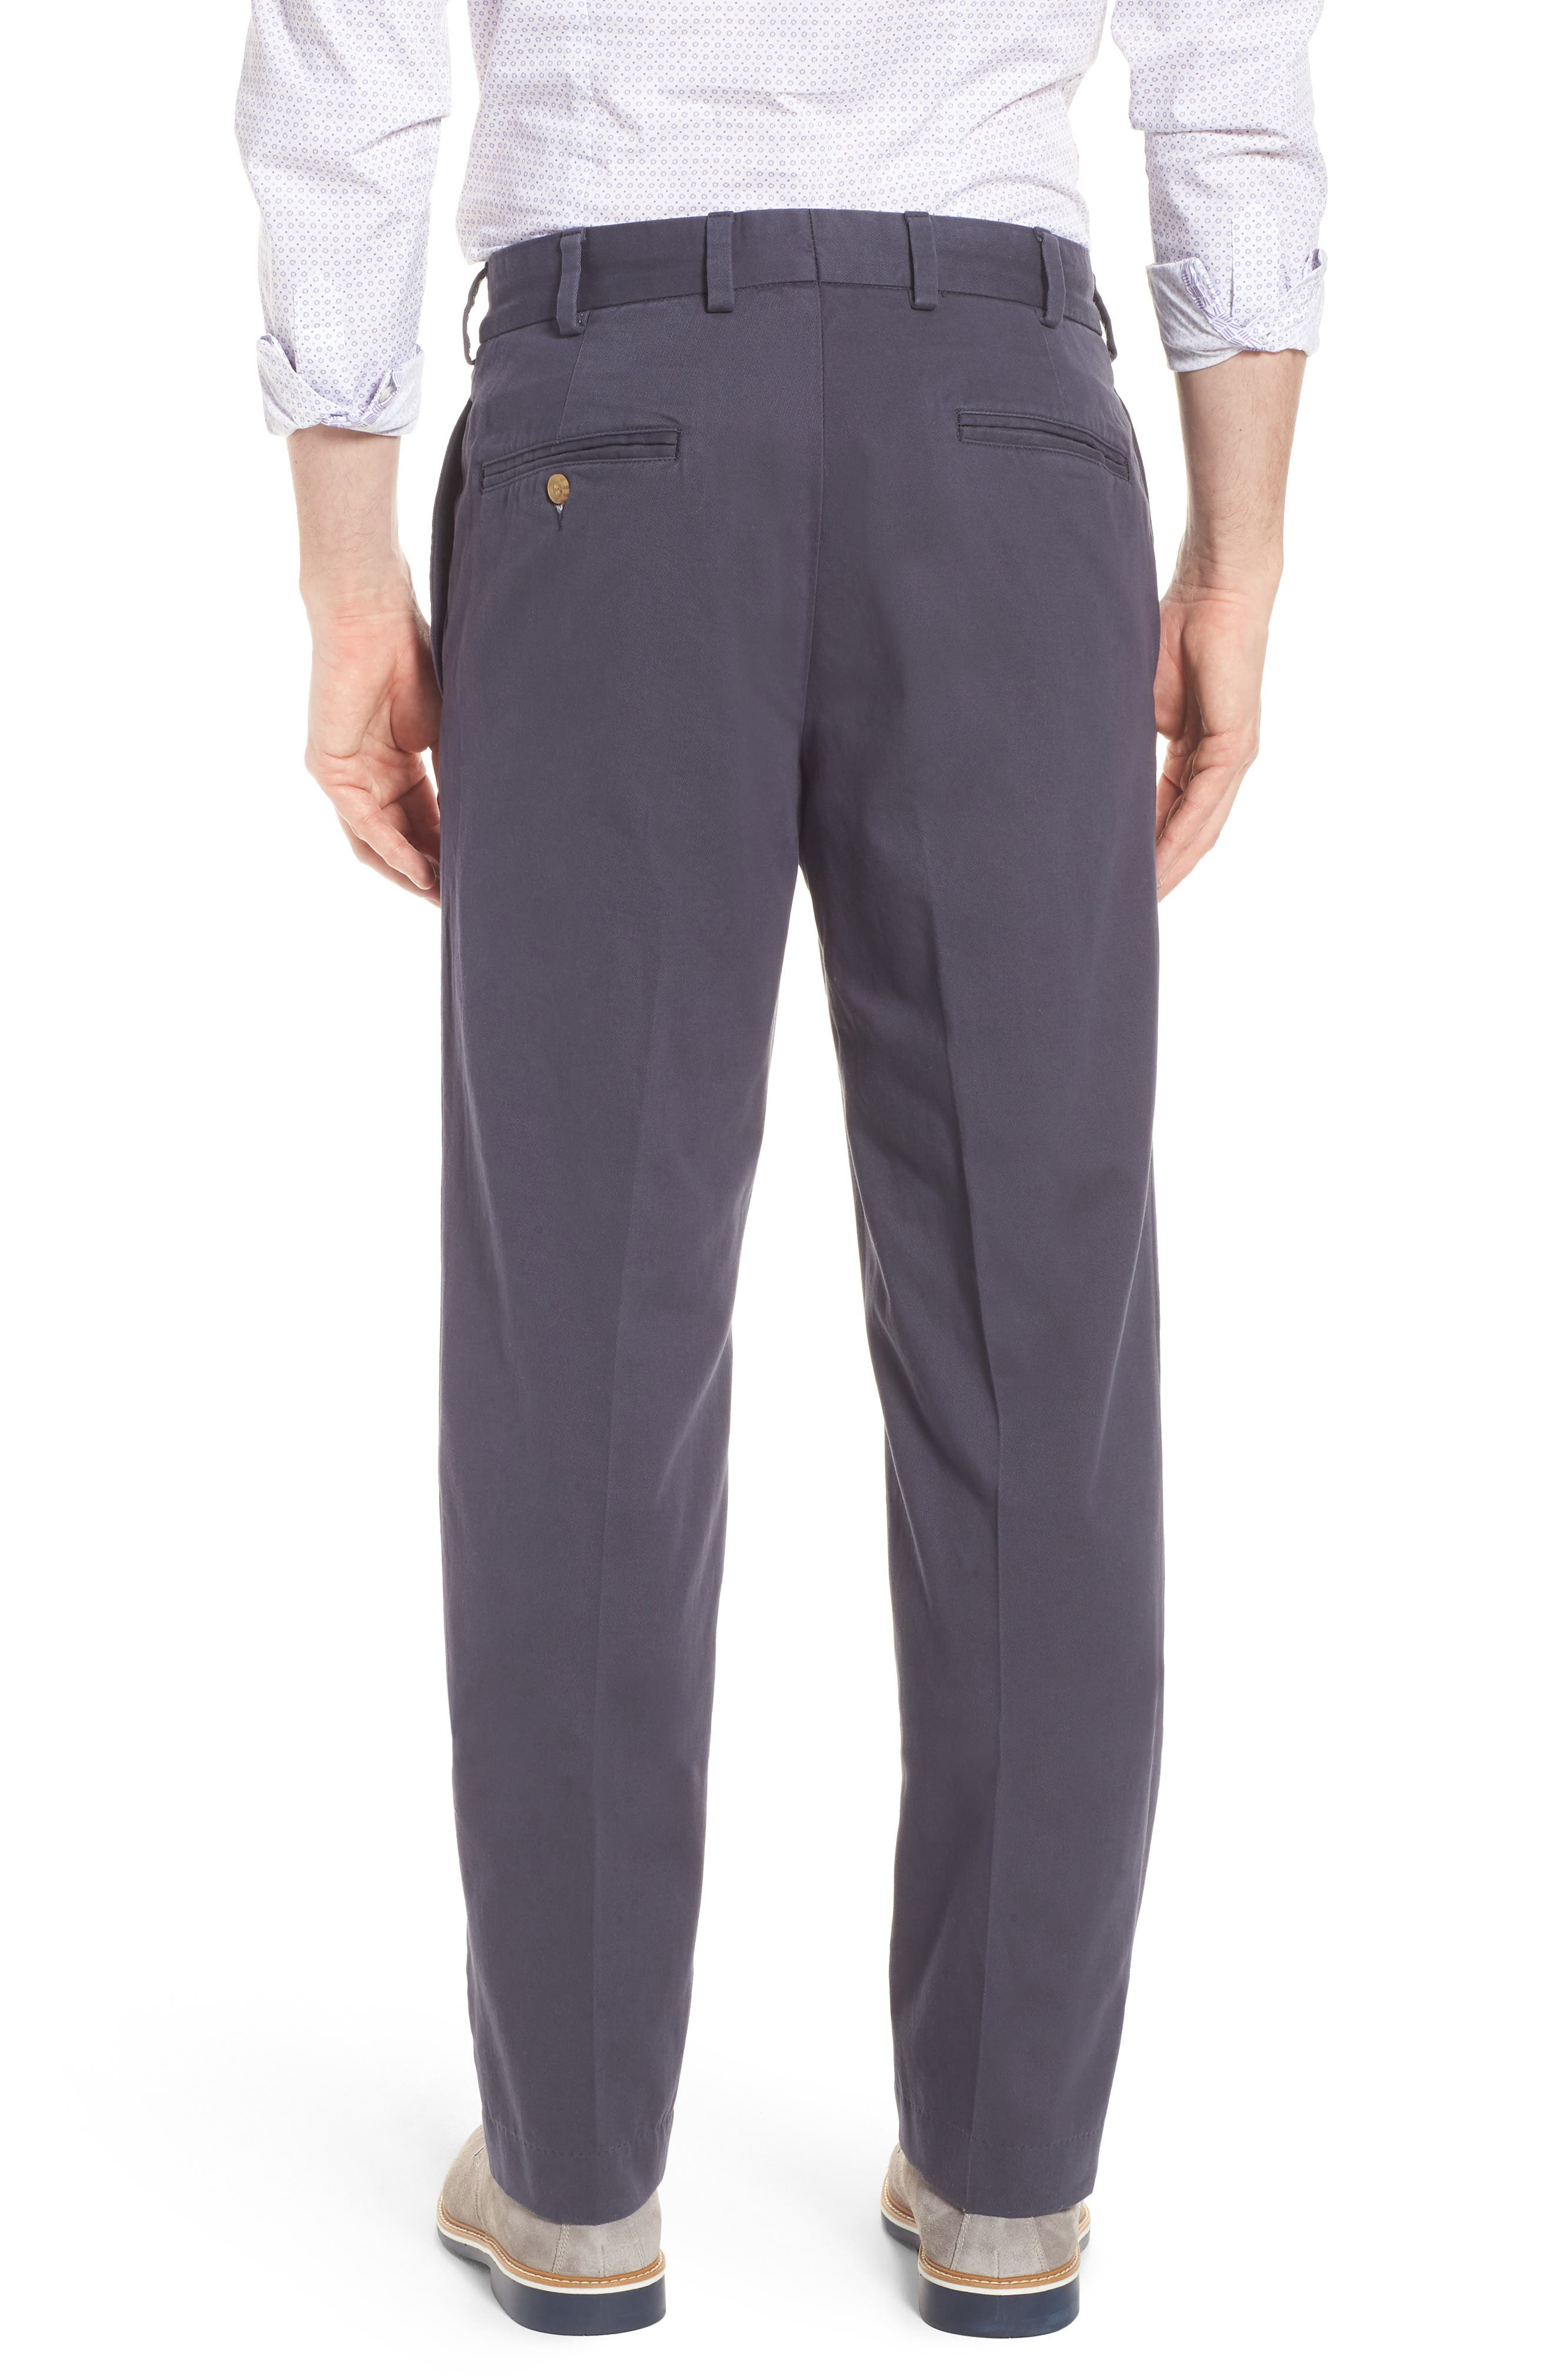 M2 Classic Fit Flat Front Vintage Twill Pants,                             Alternate thumbnail 2, color,                             Navy